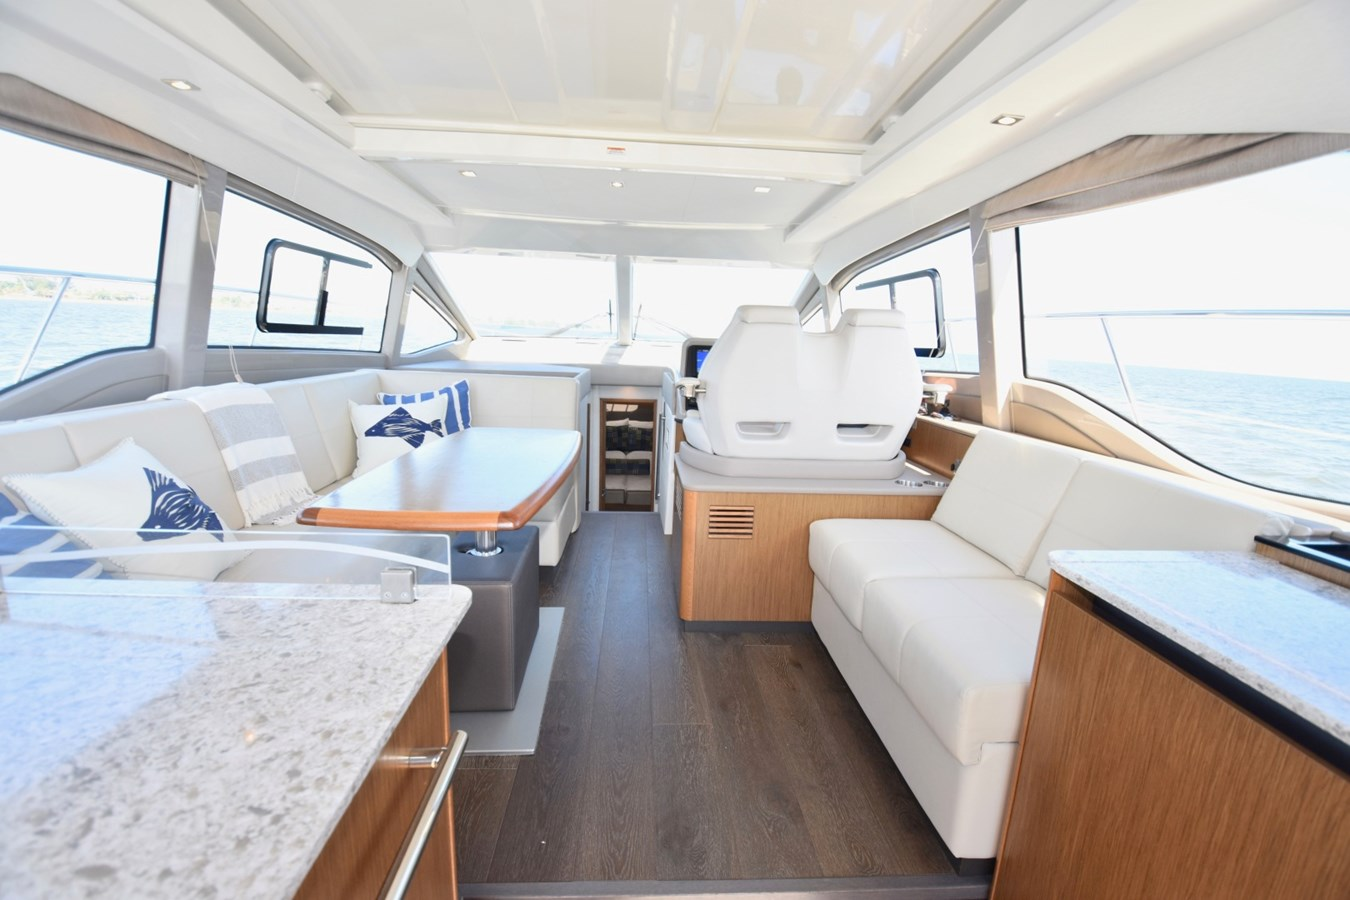 2017 46 Sea Ray Sundancer  2017 SEA RAY 46 Sundancer Cruiser 2698851